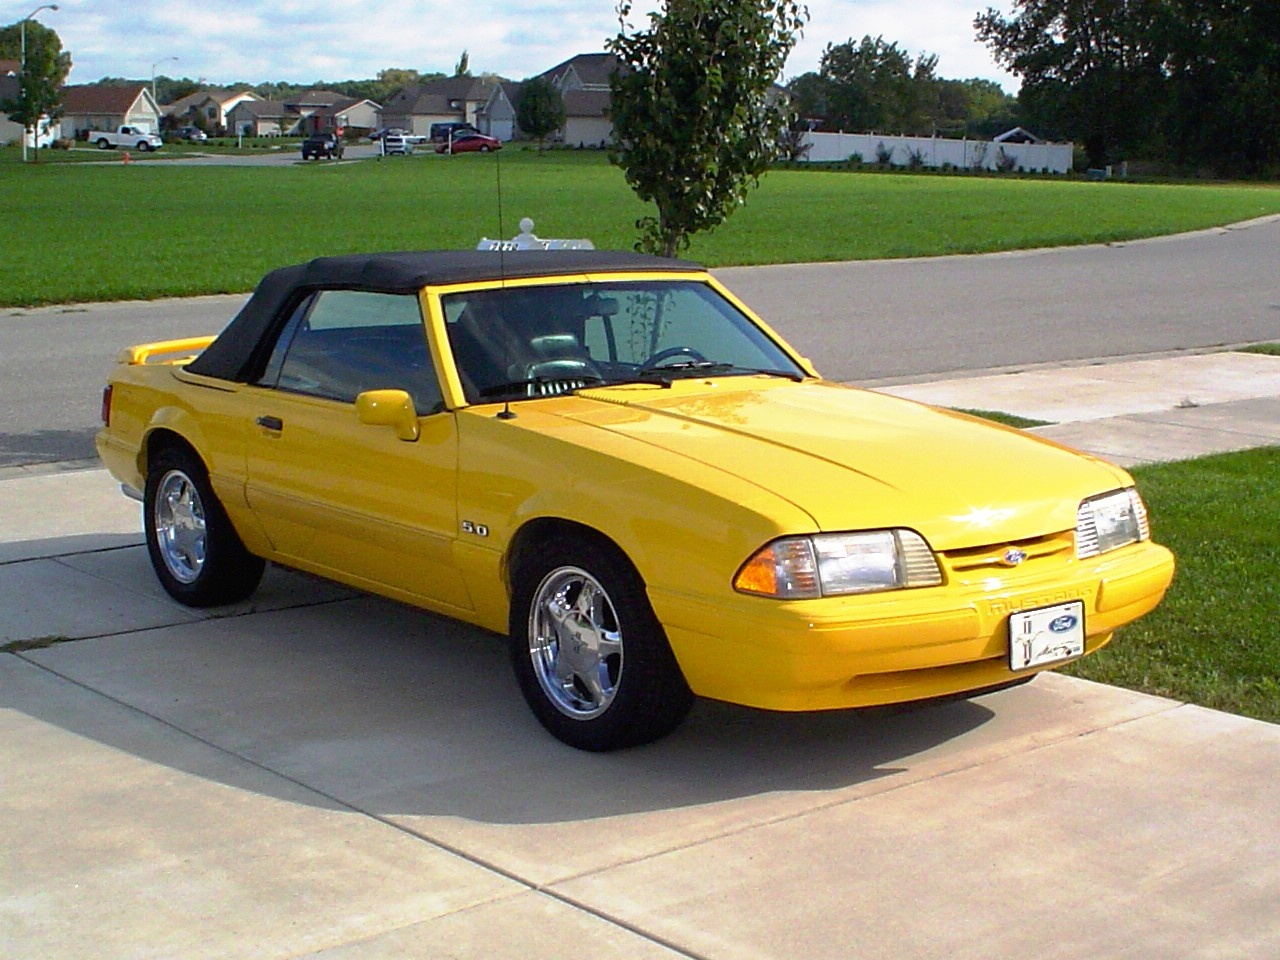 hight resolution of 1993 ford mustang lx 5 0 convertible 1993 limited edition feature car gallery worthy